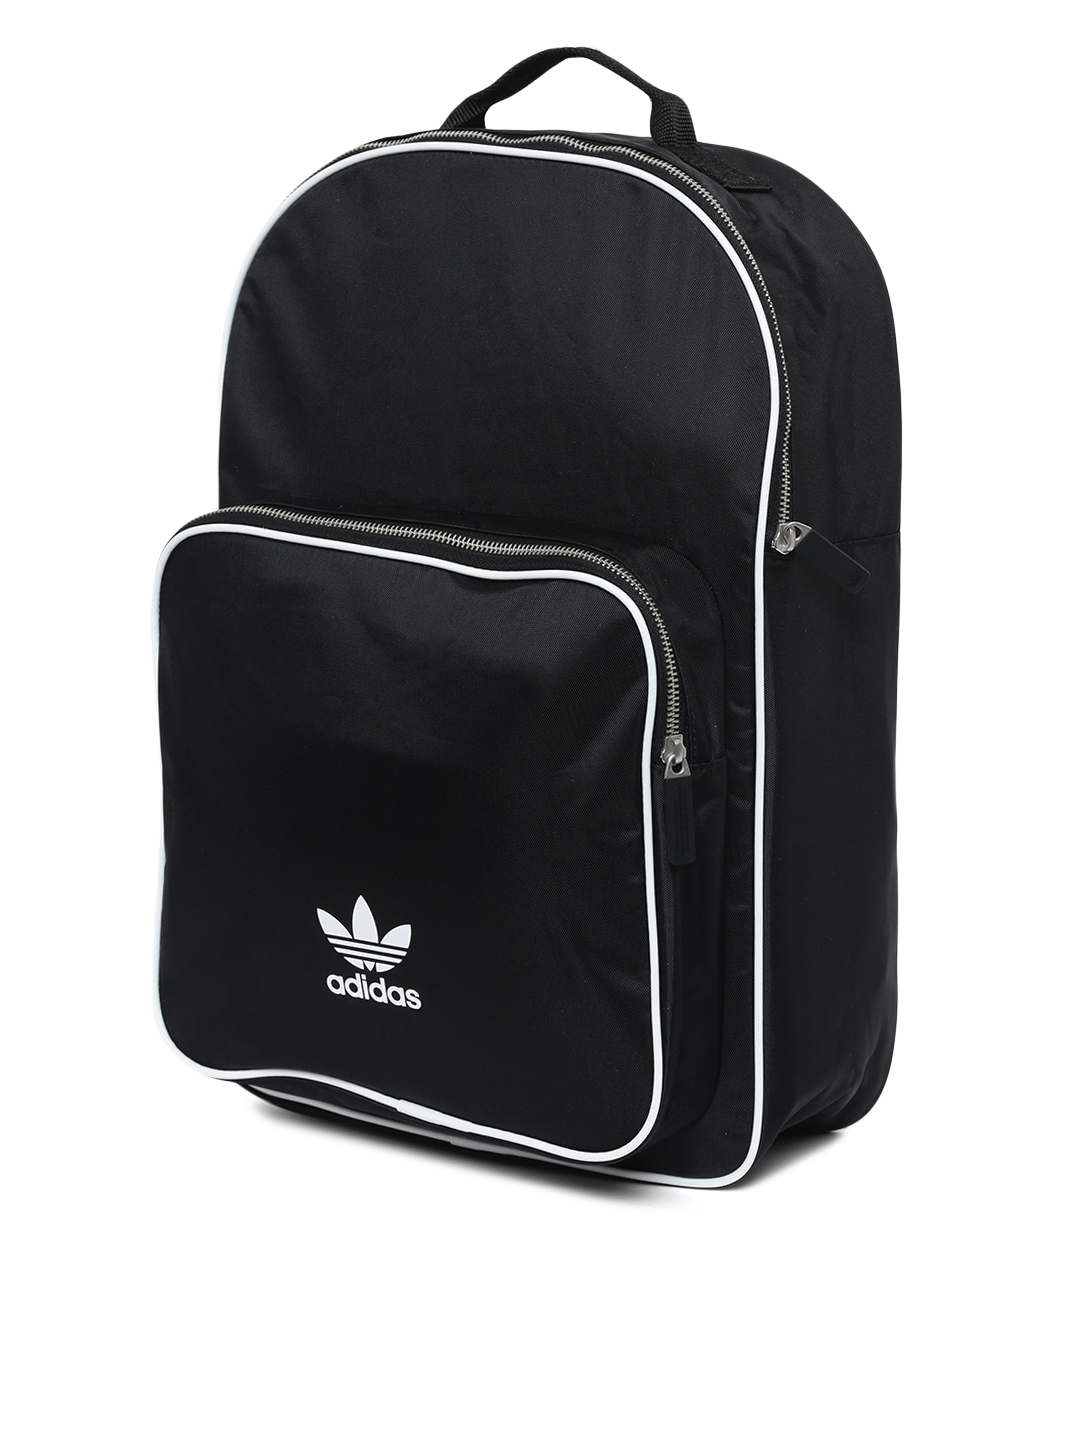 Buy ADIDAS Originals Unisex Black BP CL ADICOLOR Backpack ... 428b4c590ca22